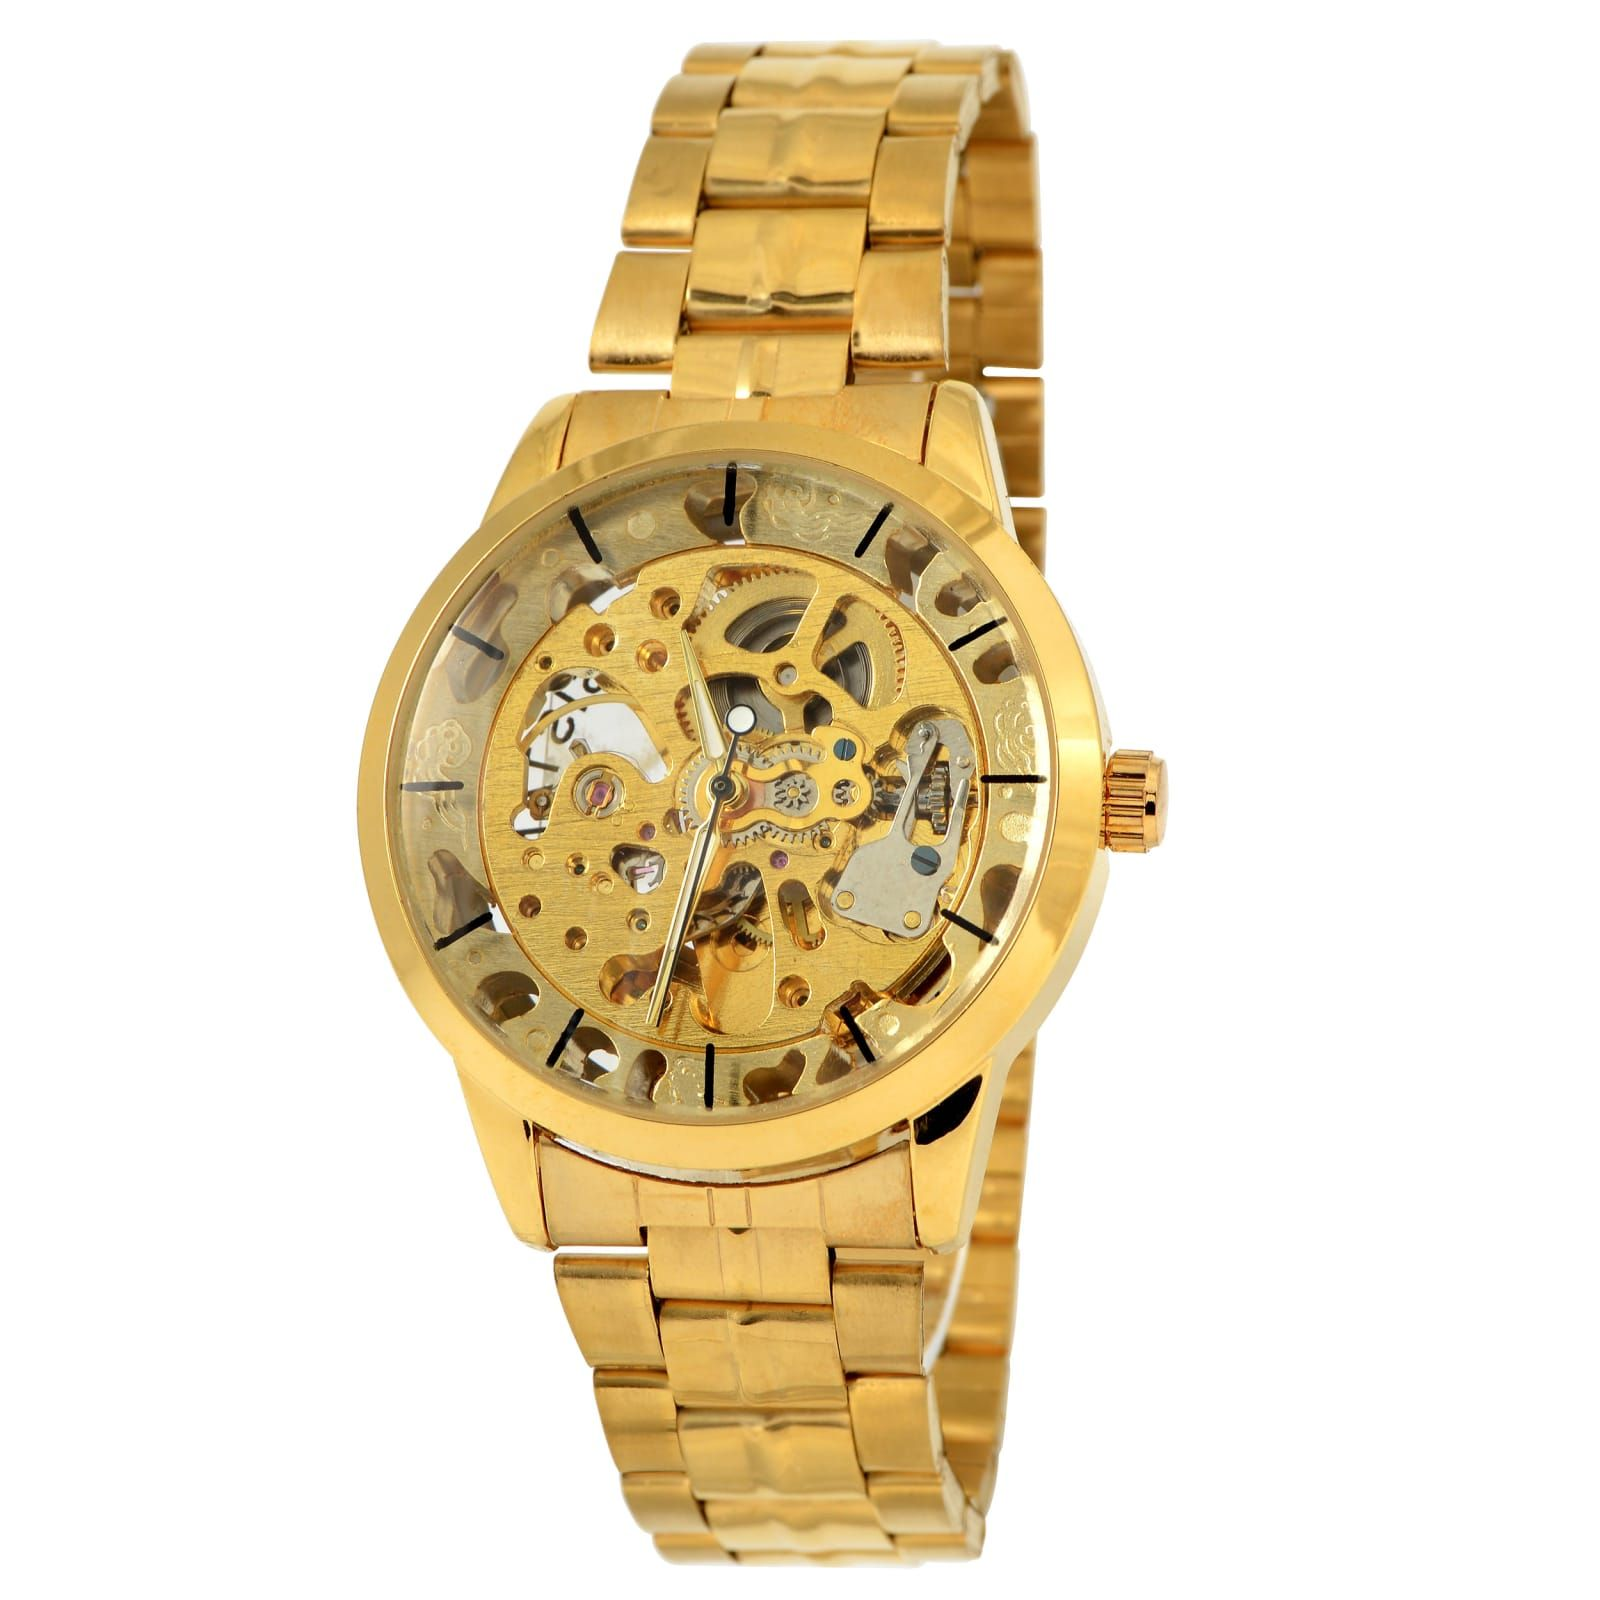 Photo of Gold Winding Watch | Winner | Free shipping over $75